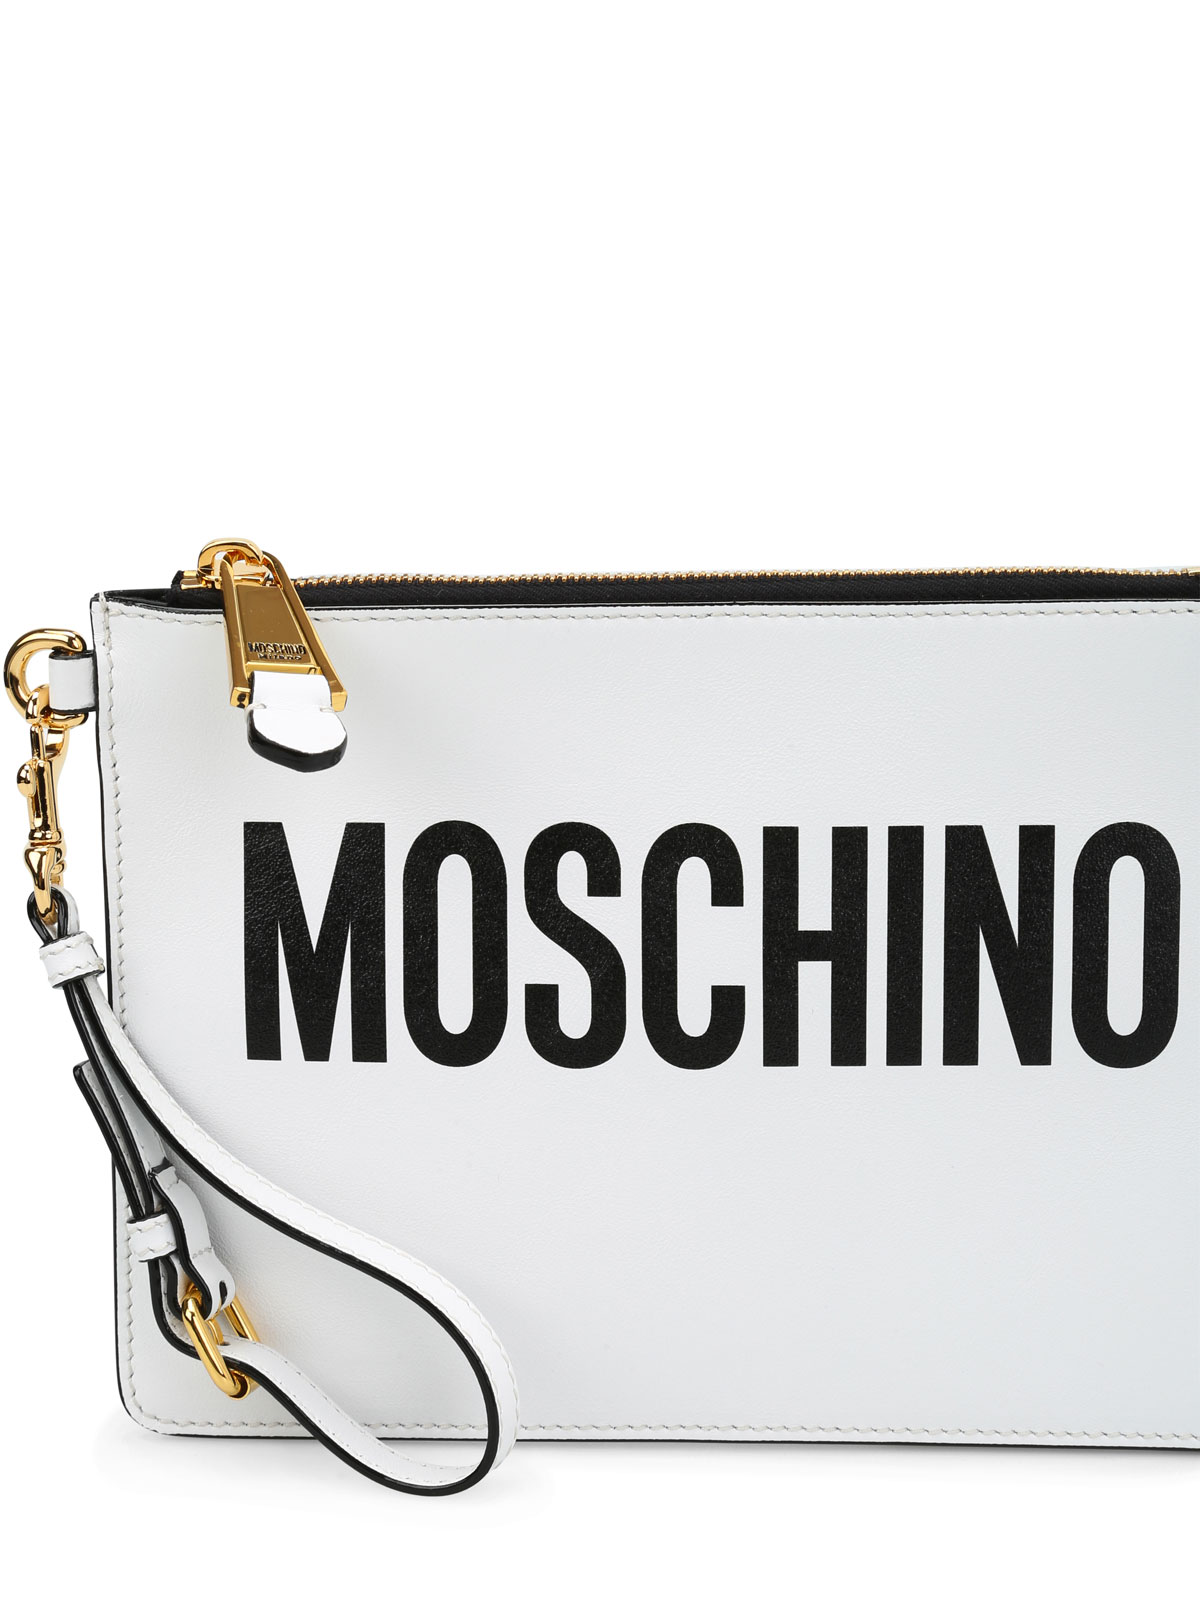 Moschino Leather logo minimal pouch